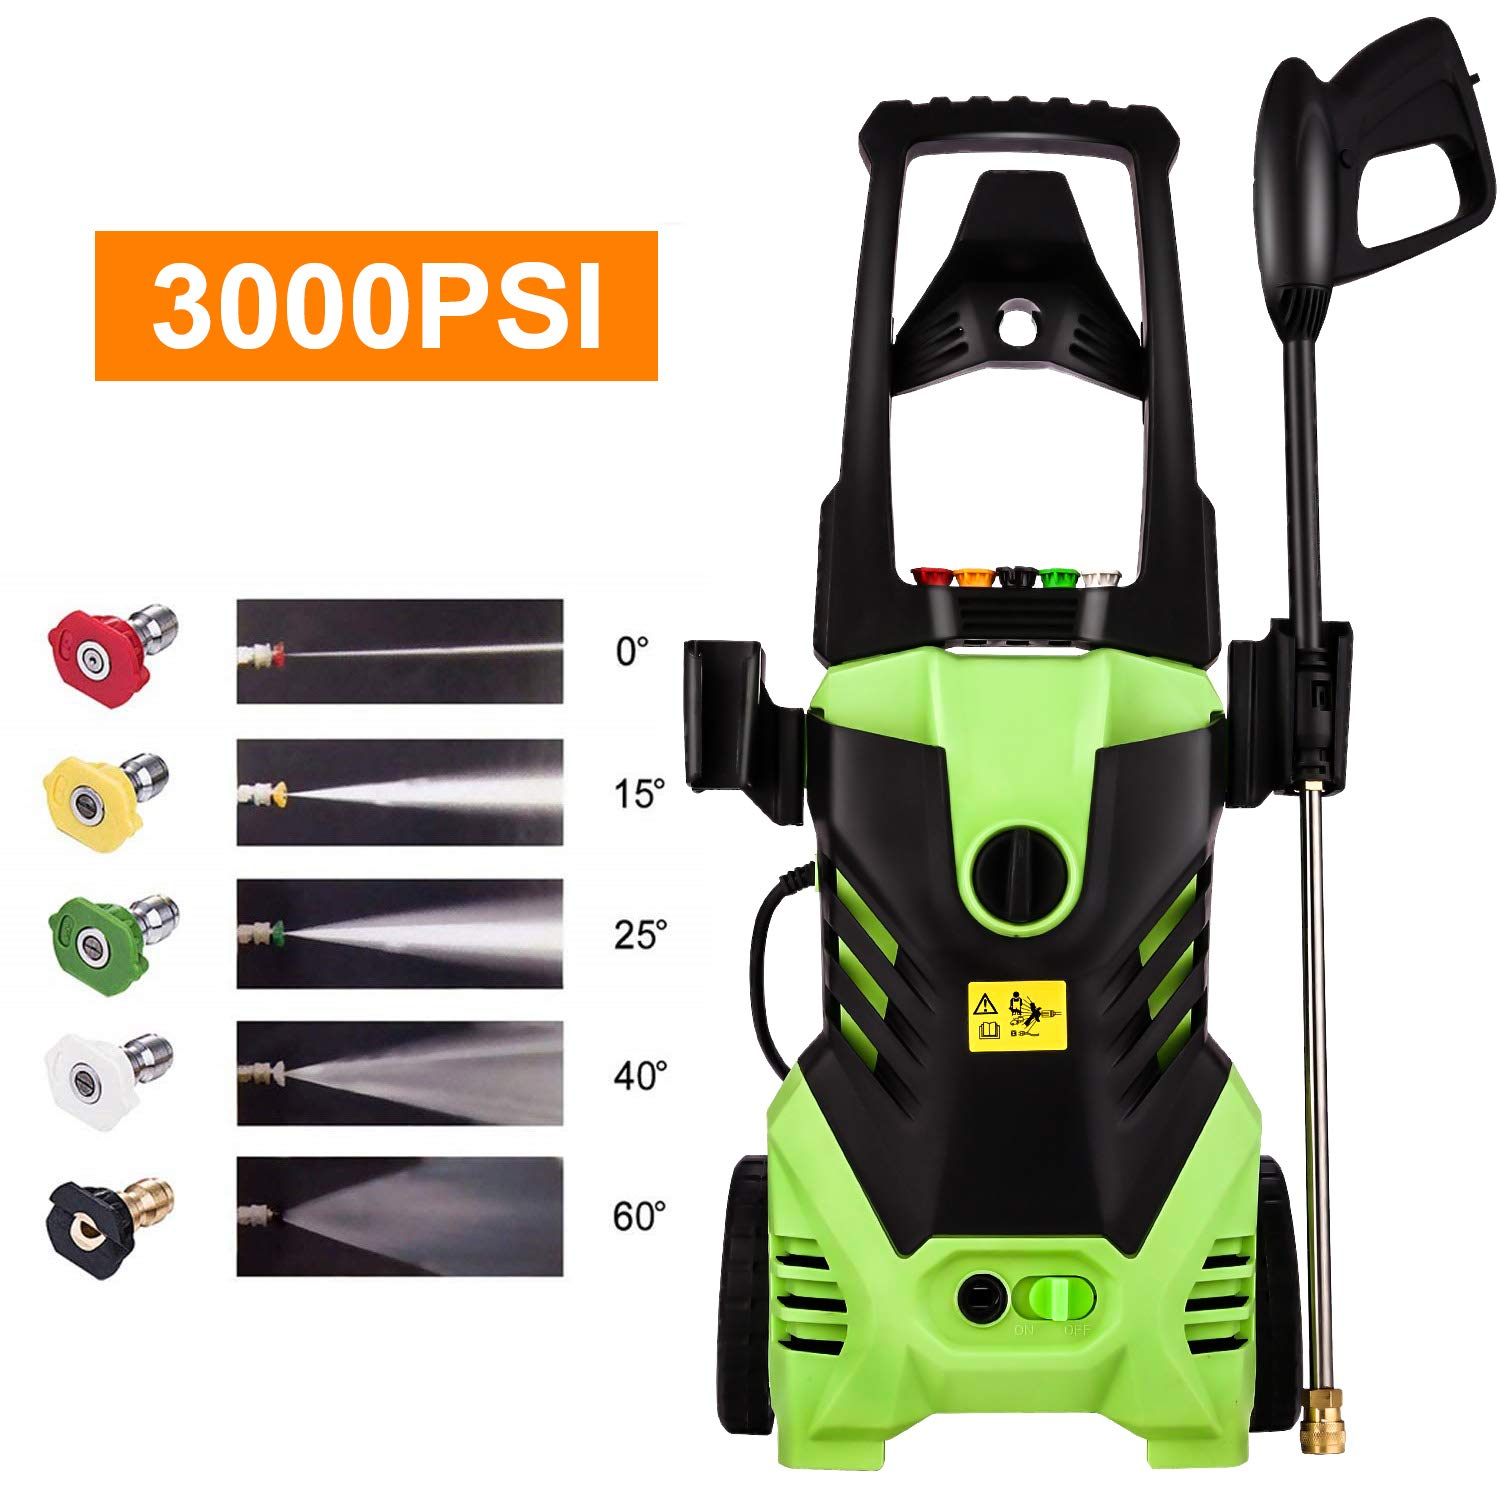 Homdox 3000PSI Pressure Washer Power Washer Cleaner 1800W Powerful Portable Storage Machine for Car/Vehicle/Patio/Driveway/Floor/Wall/Furniture /5 Nozzles